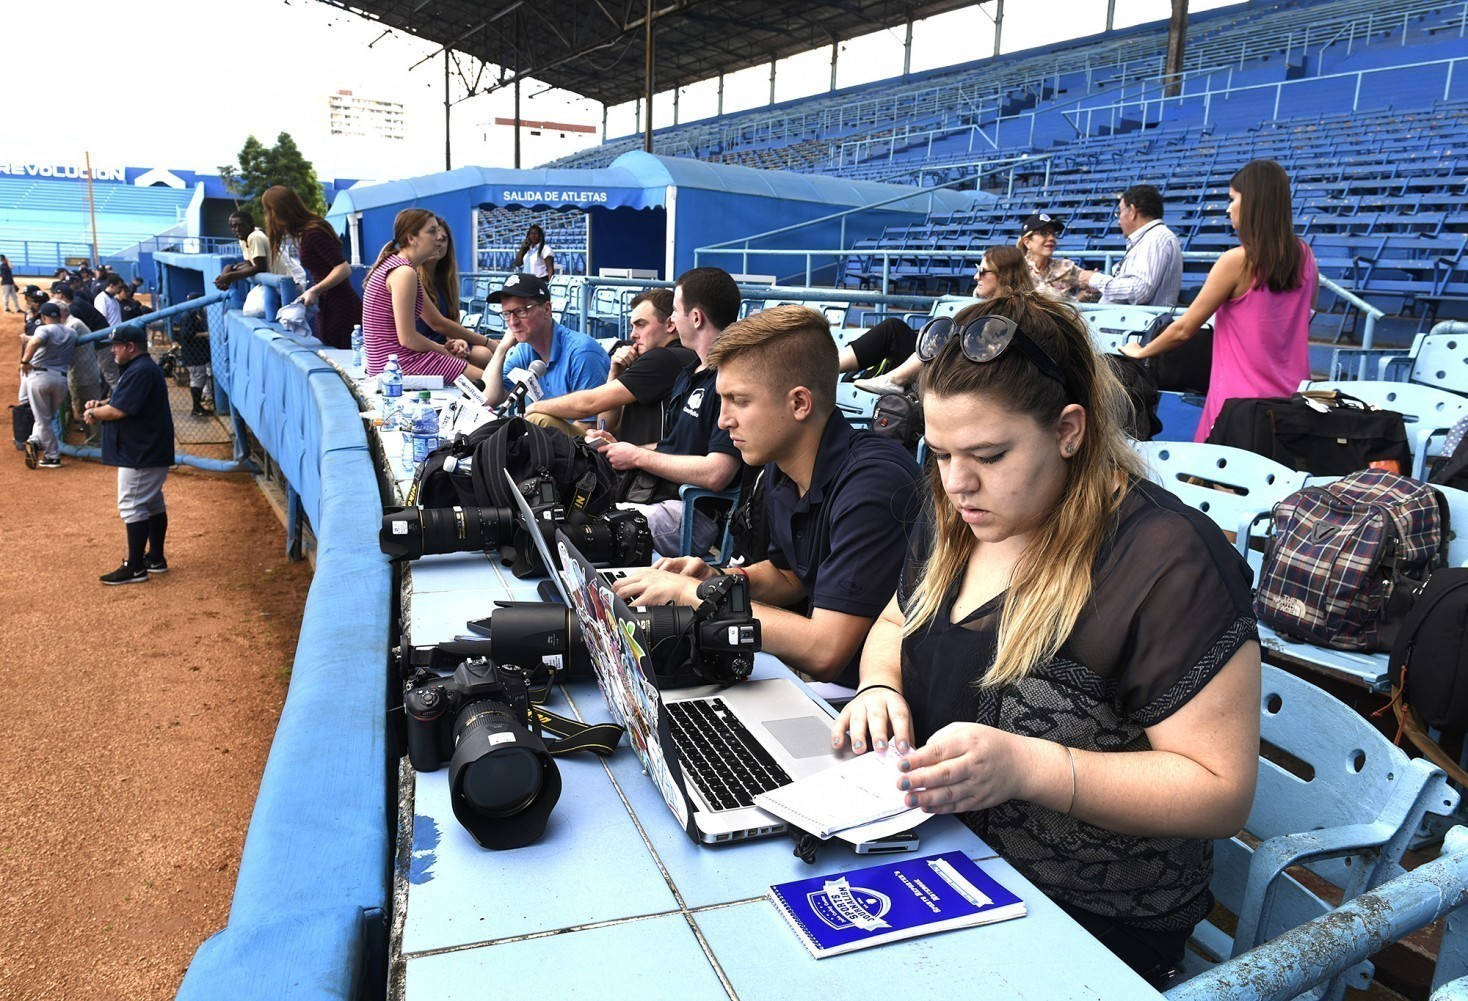 Curley Center Covering Baseball in Cuba